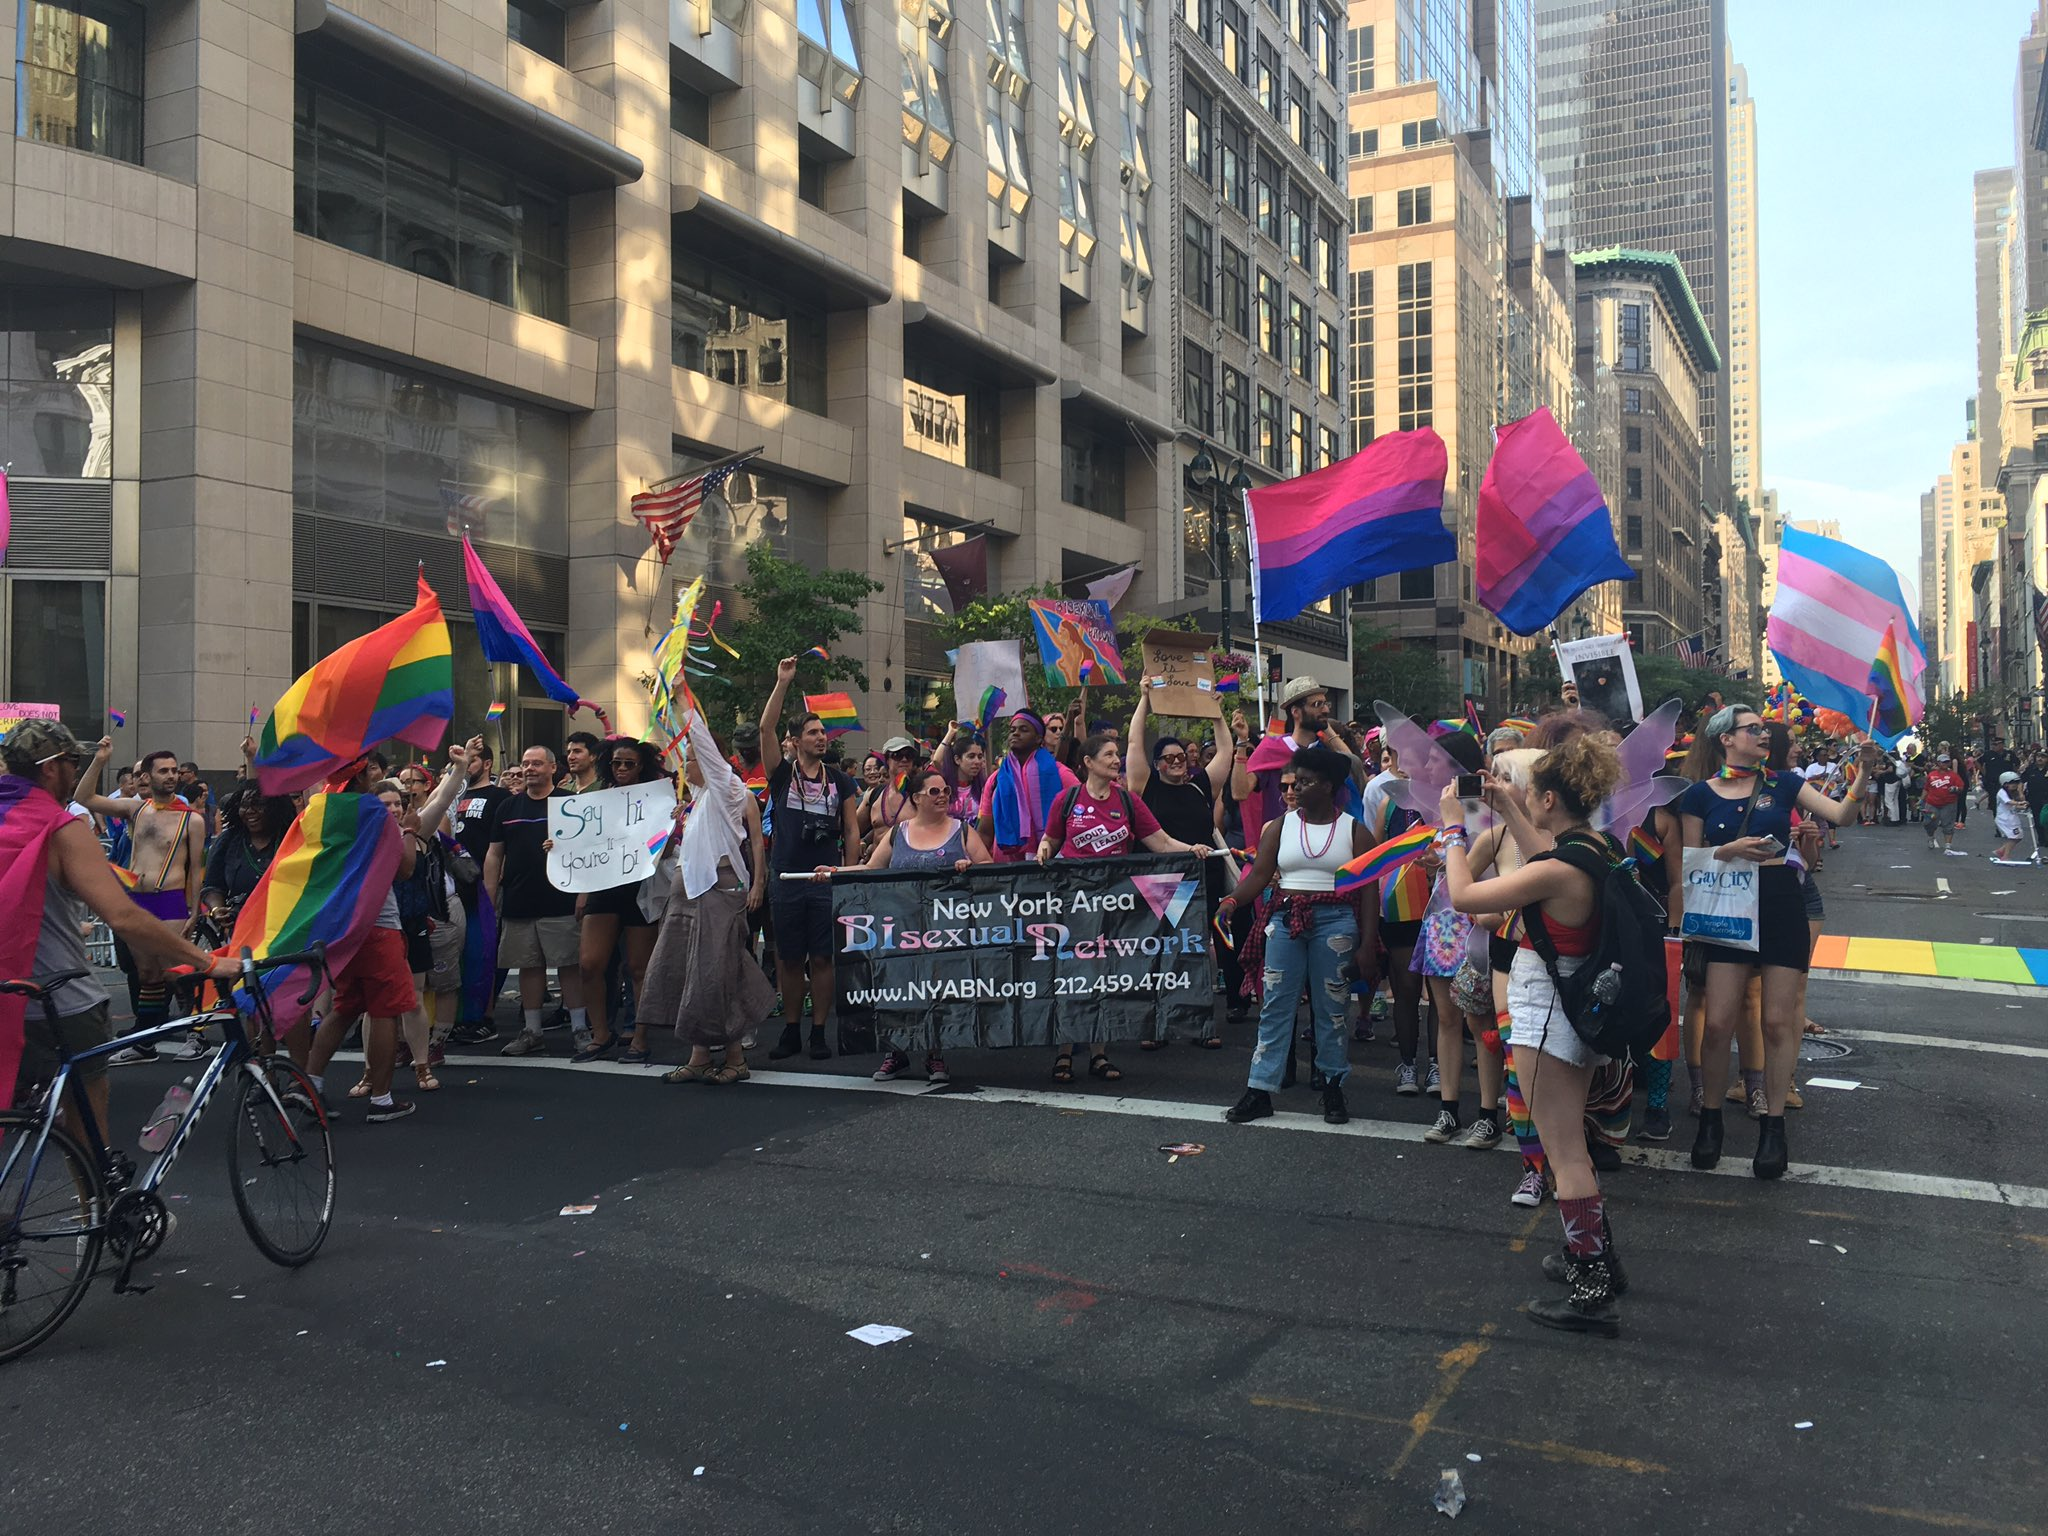 Brilliant new york area bisexual network speaking